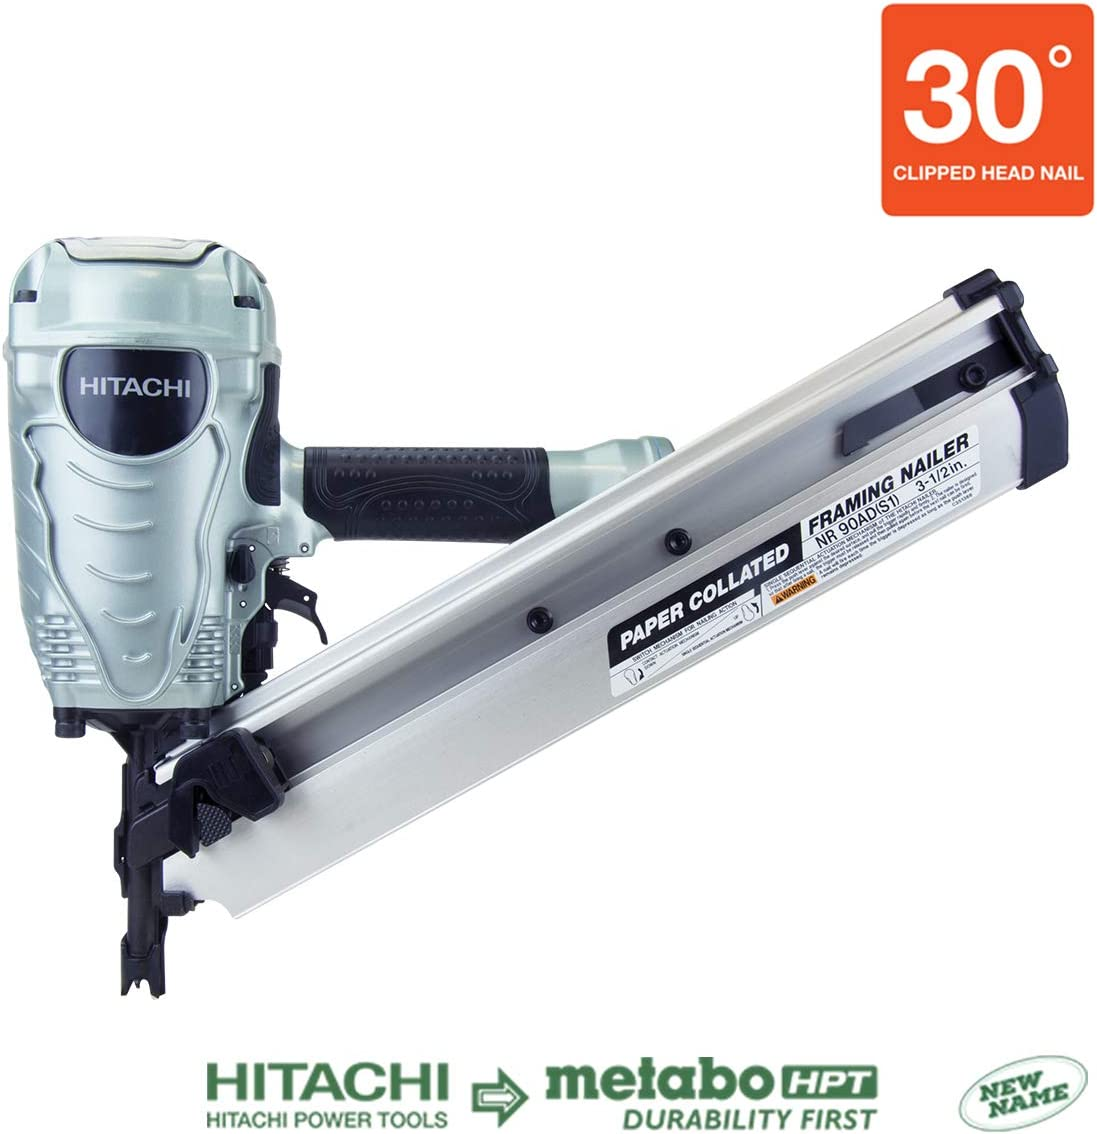 Hitachi NR90ADS1 2 to 3-1//2 Paper Collated Framing Nailer